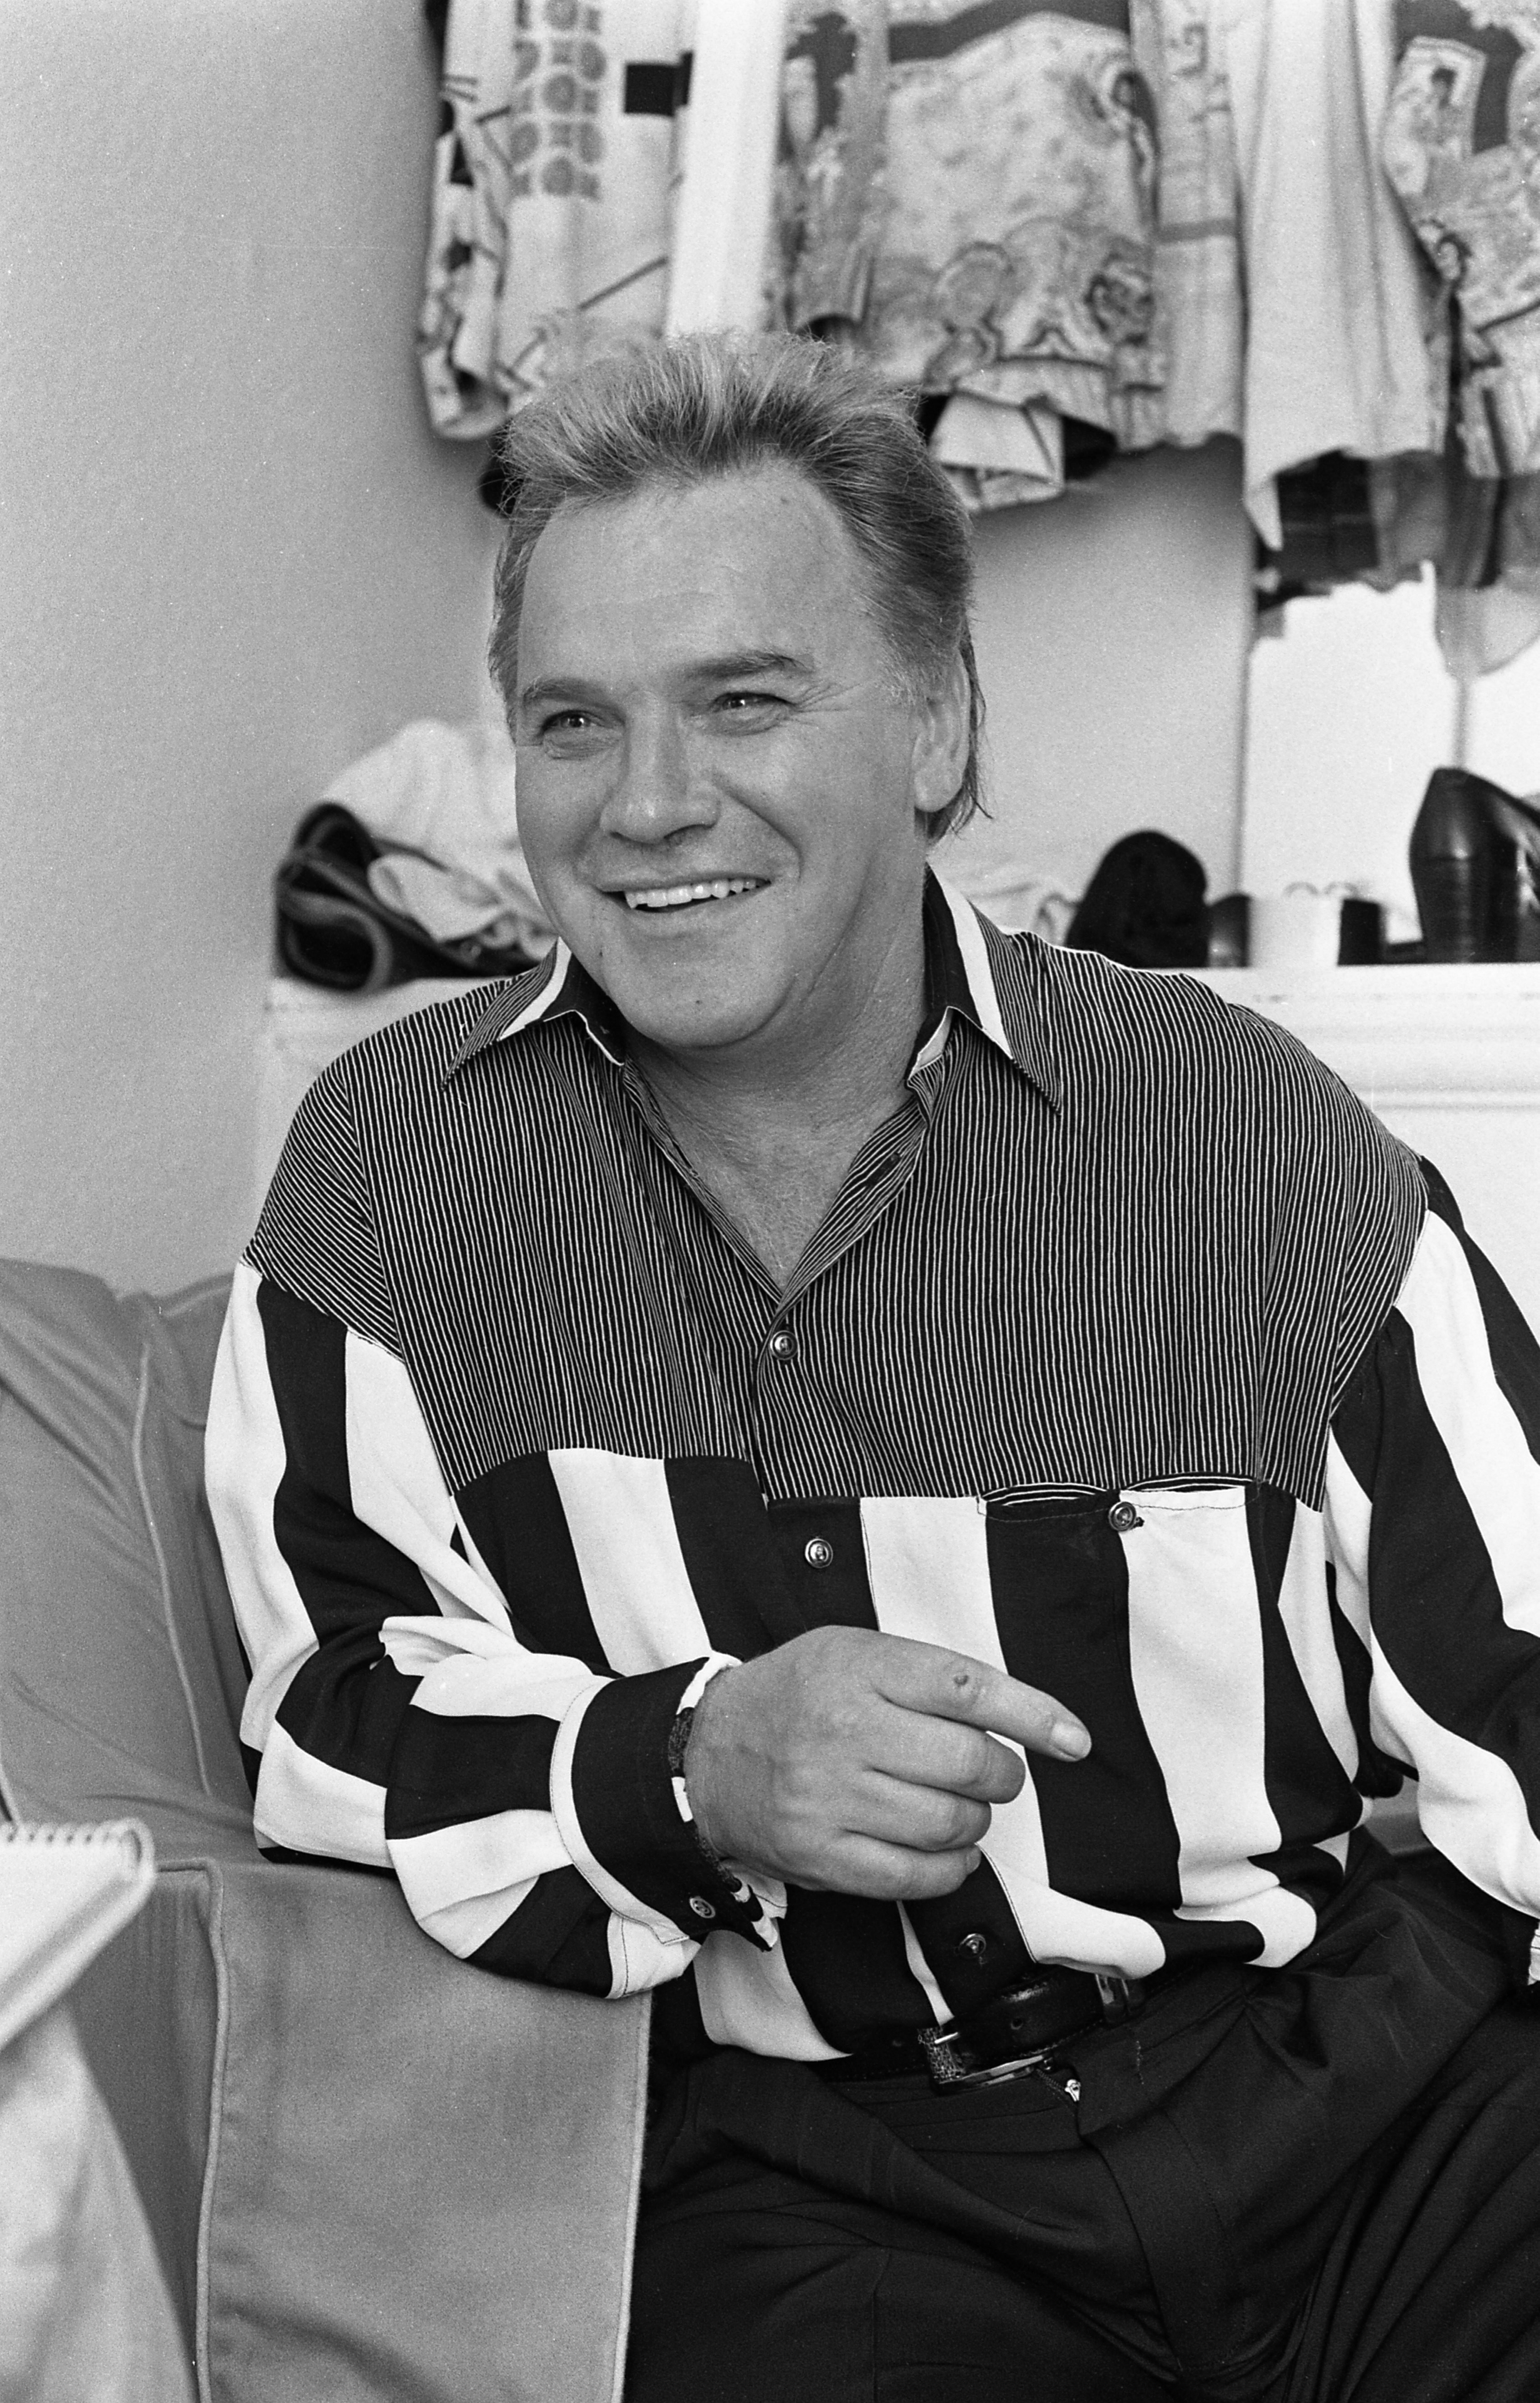 Freddie Starr in his dressing room at the Olympia Theatre in Dublin, Ireland, in 1993 | Photo: Getty Images